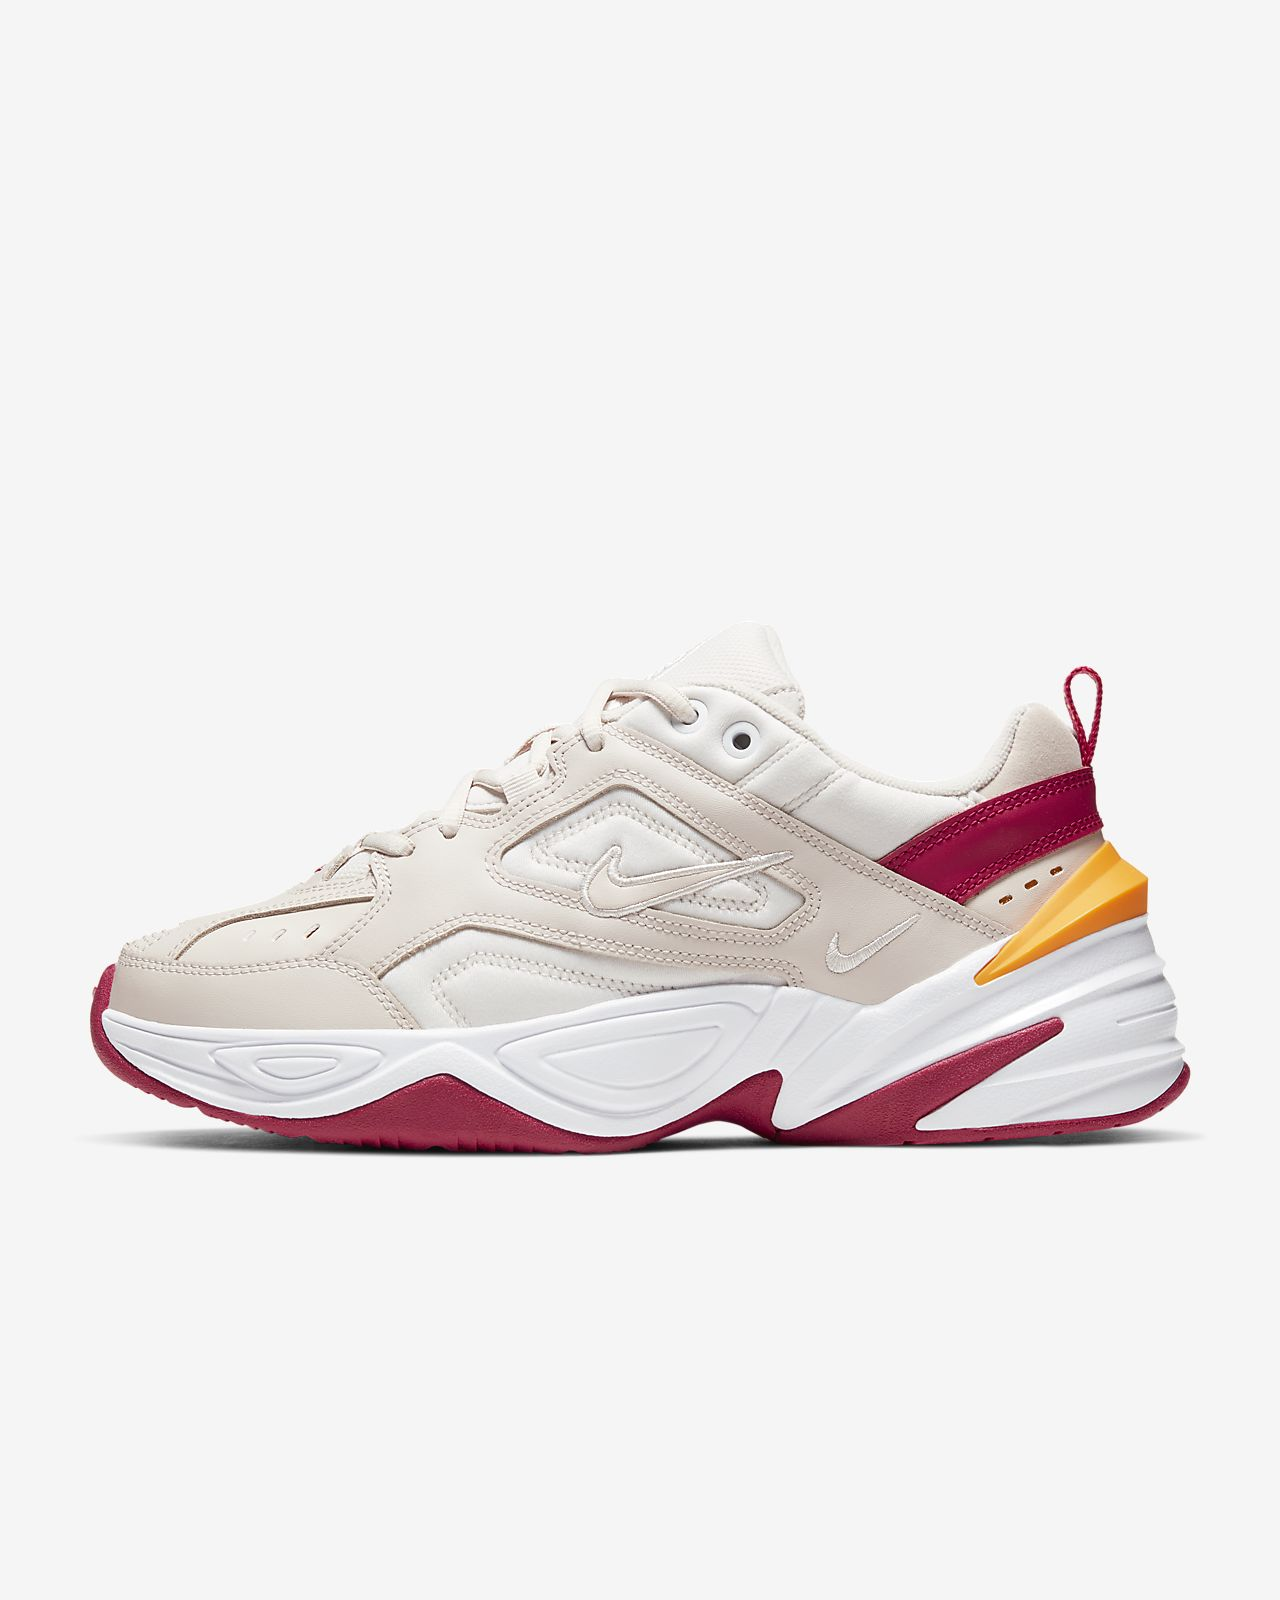 popular stores offer discounts amazing price Nike M2K Tekno Schuh